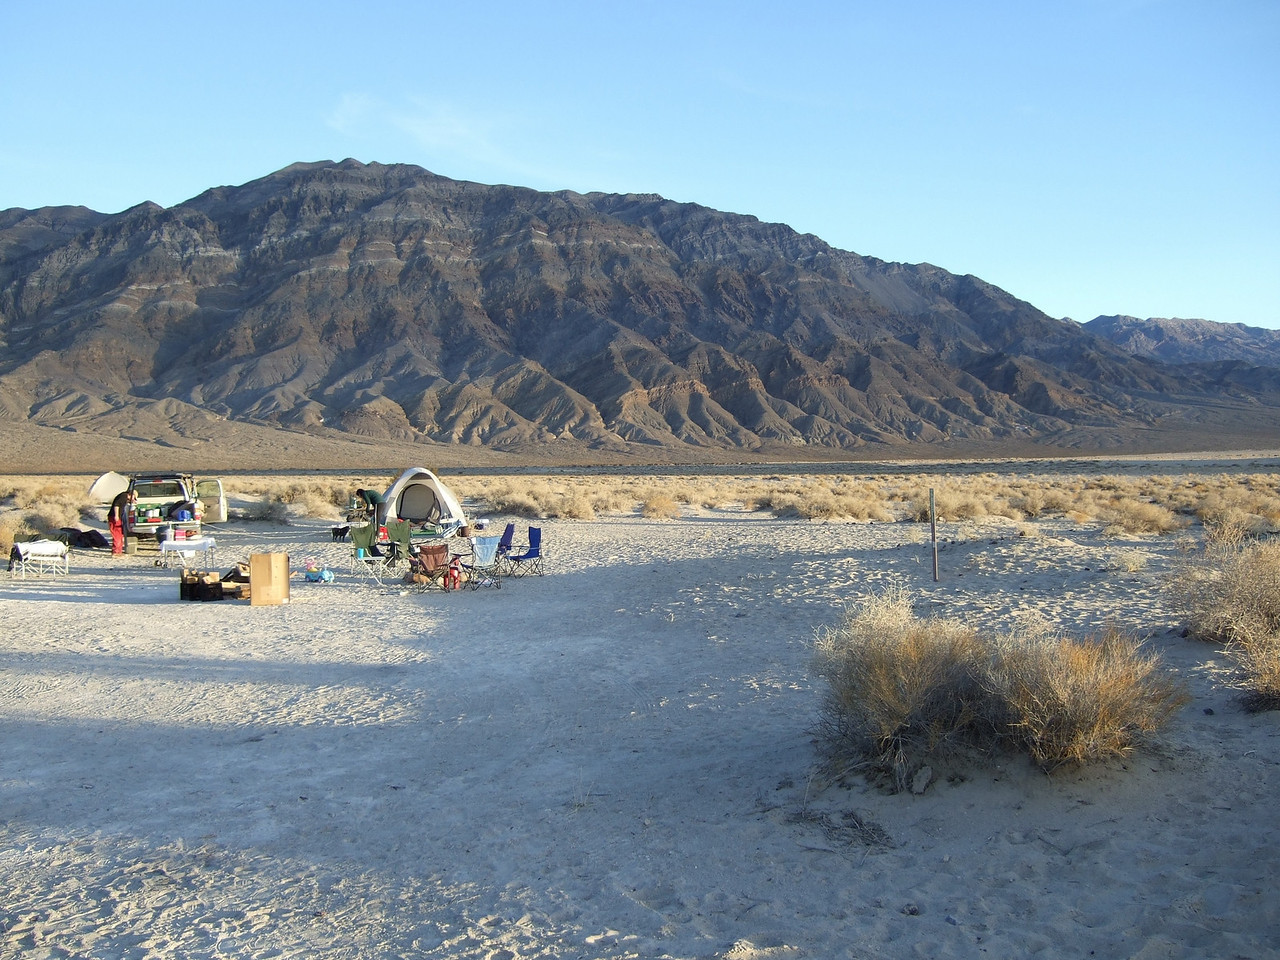 A view of our campsite.